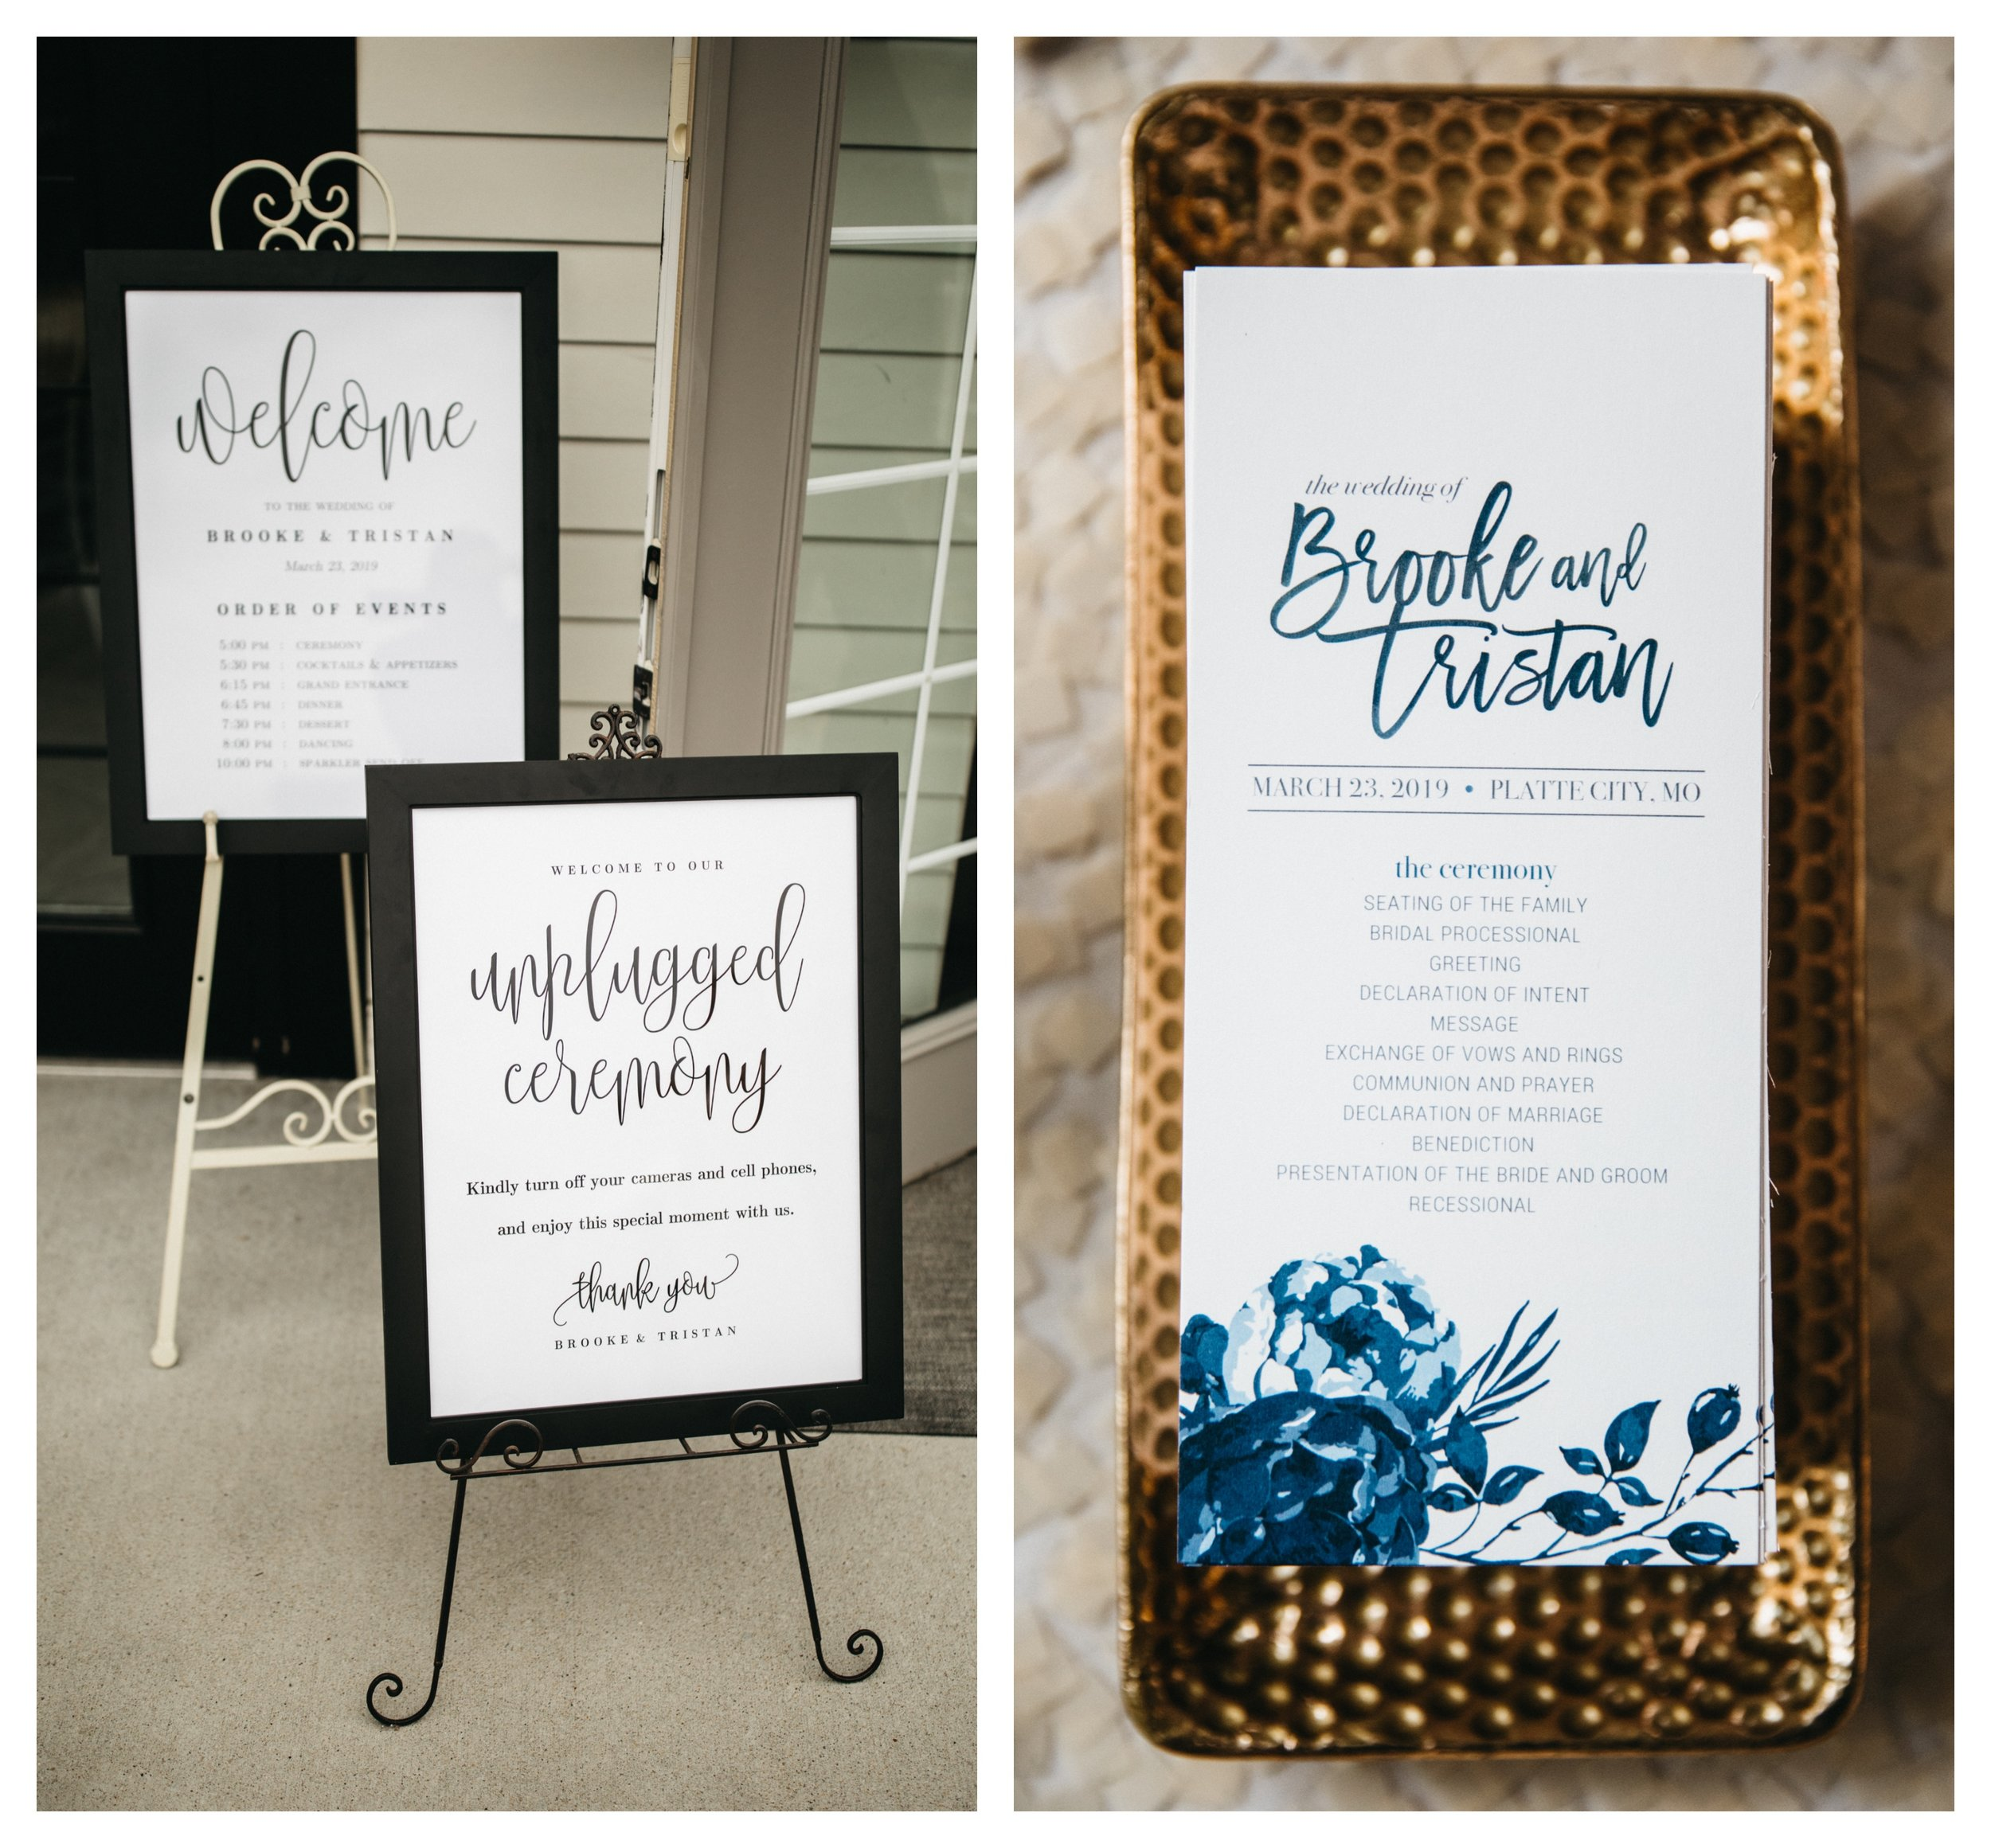 Wedding Signage_Kansas City Bride